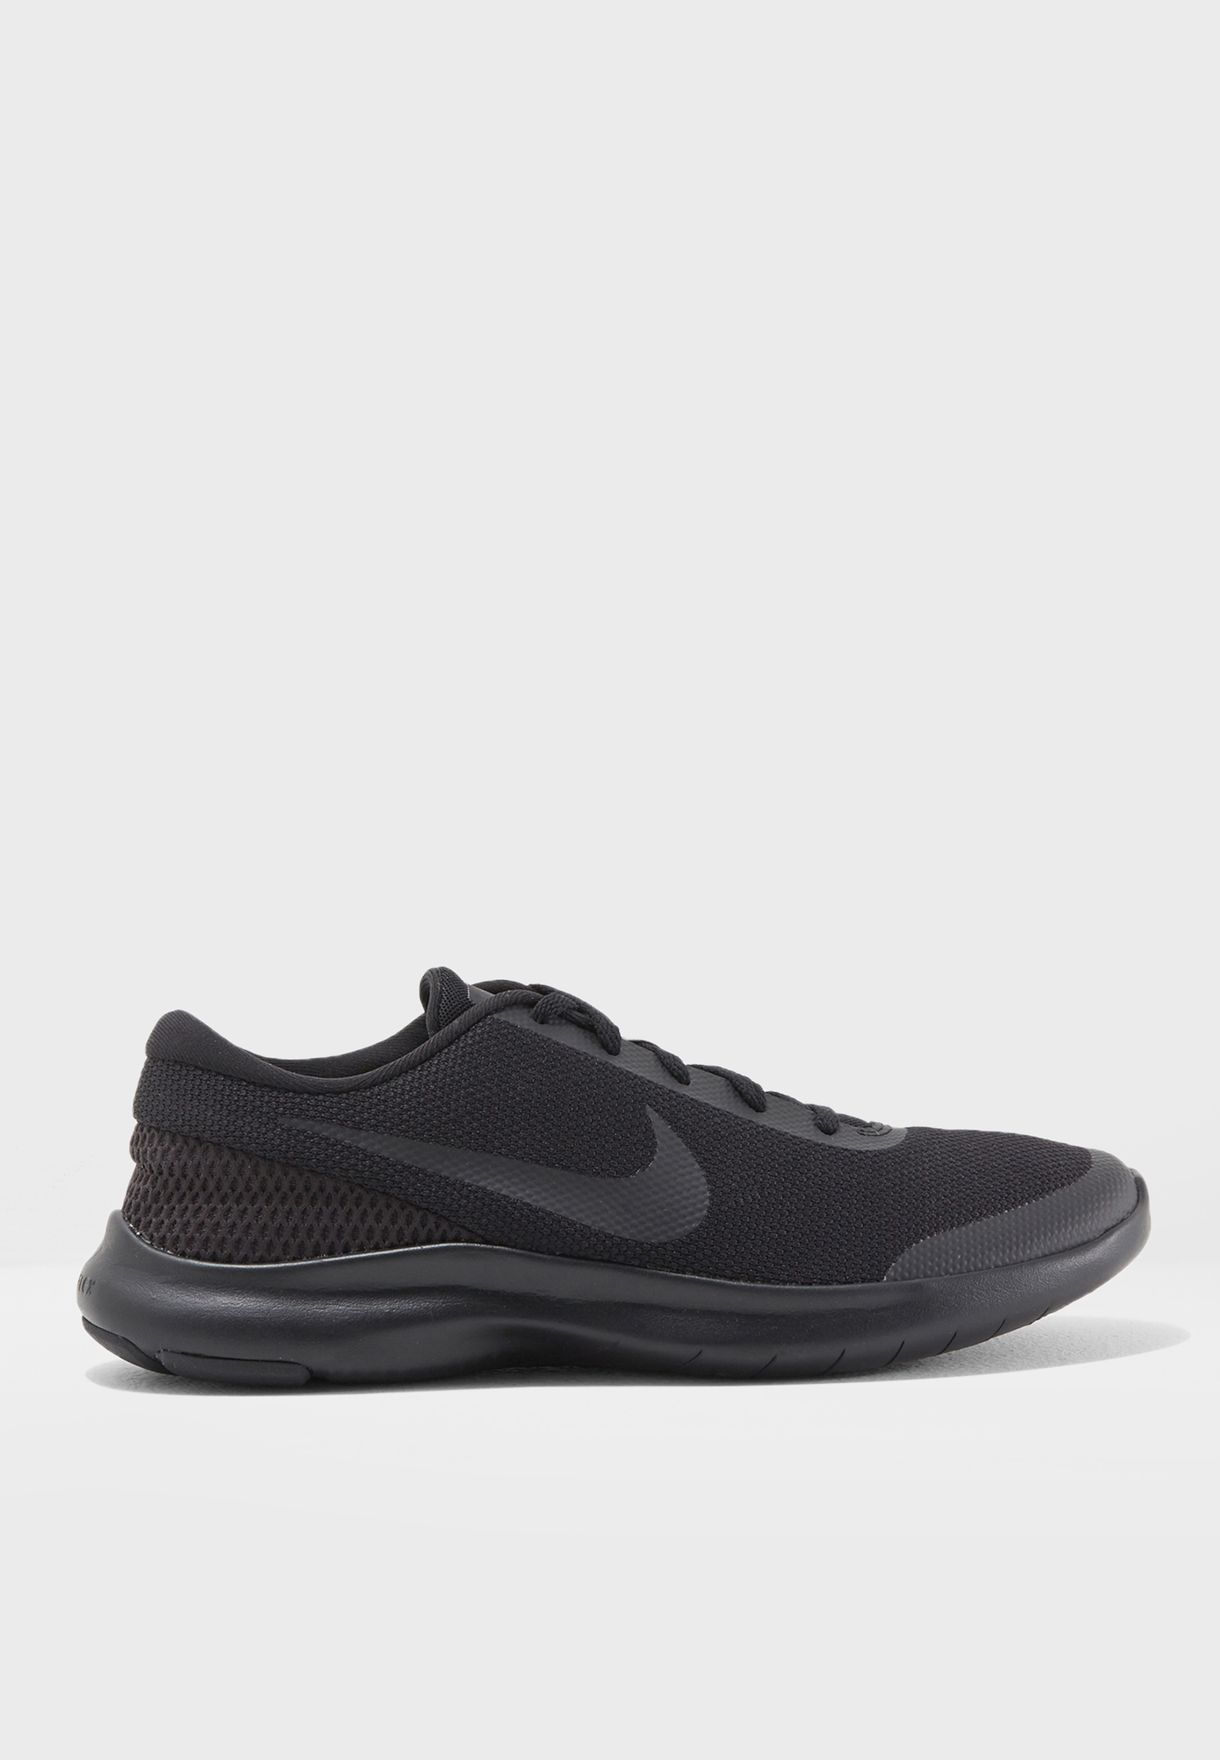 abeeb8c5c3cc6 Shop Nike black Flex Experience RN 7 908985-002 for Men in Saudi -  NI727SH93ZRU